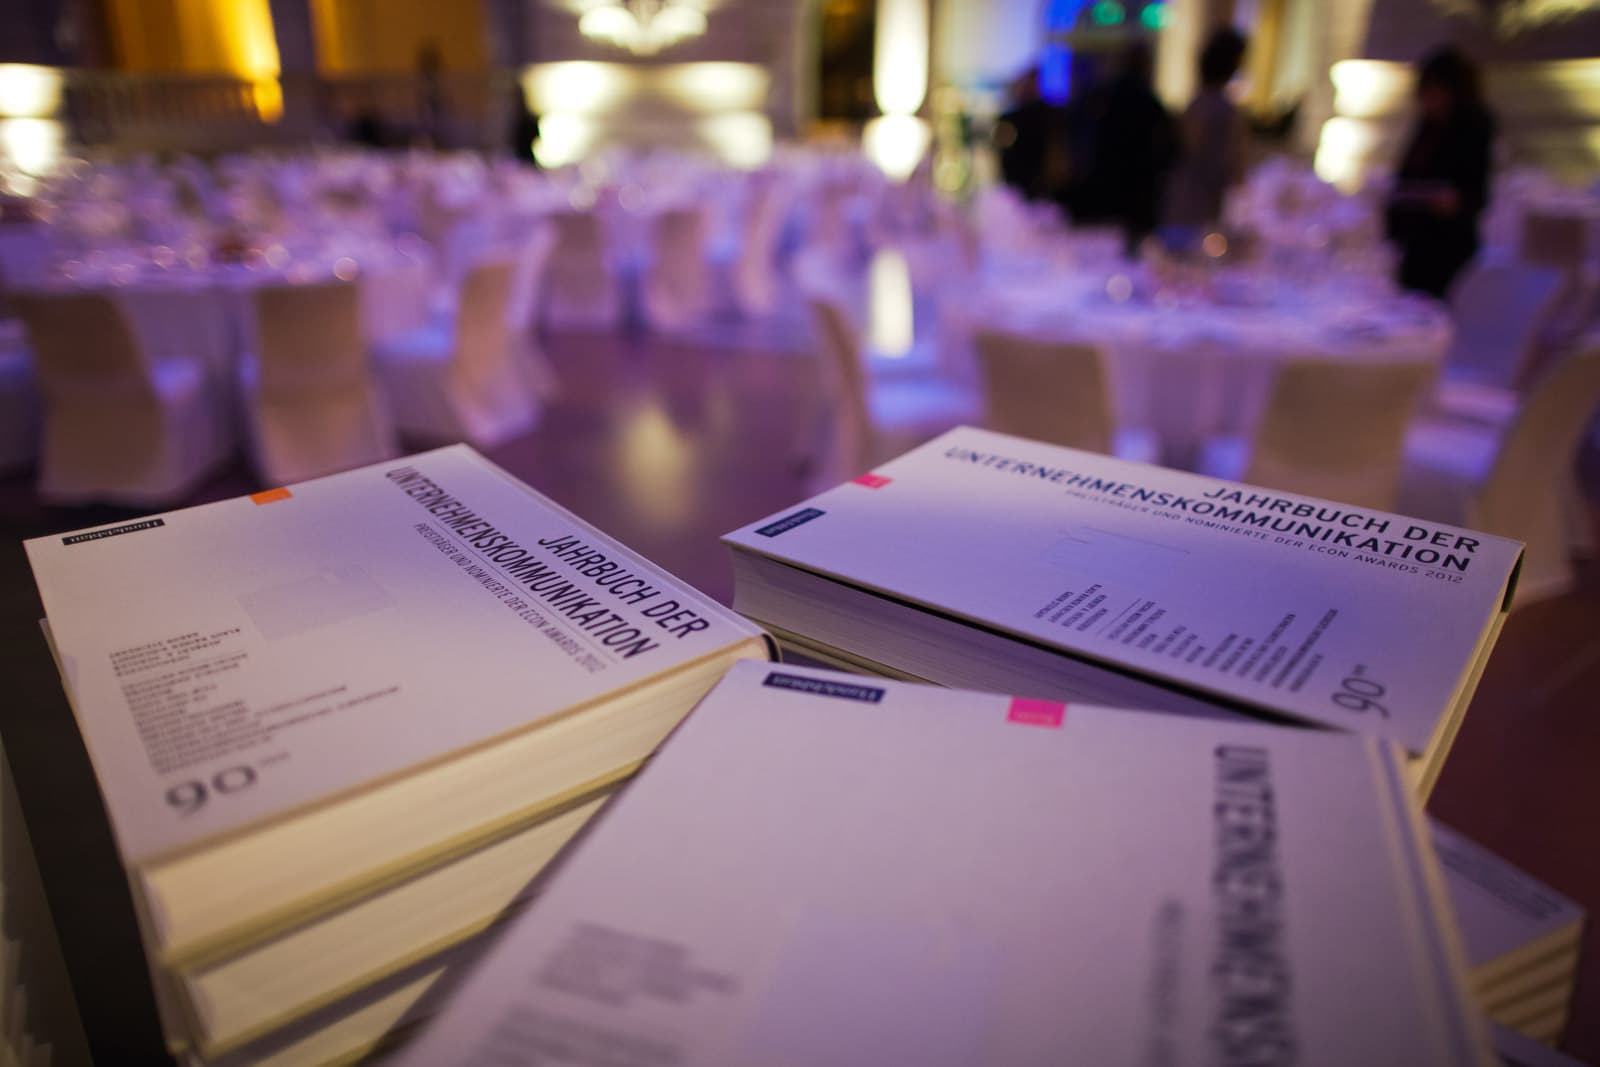 eventfotograf-berlin-econ-award-05.jpg